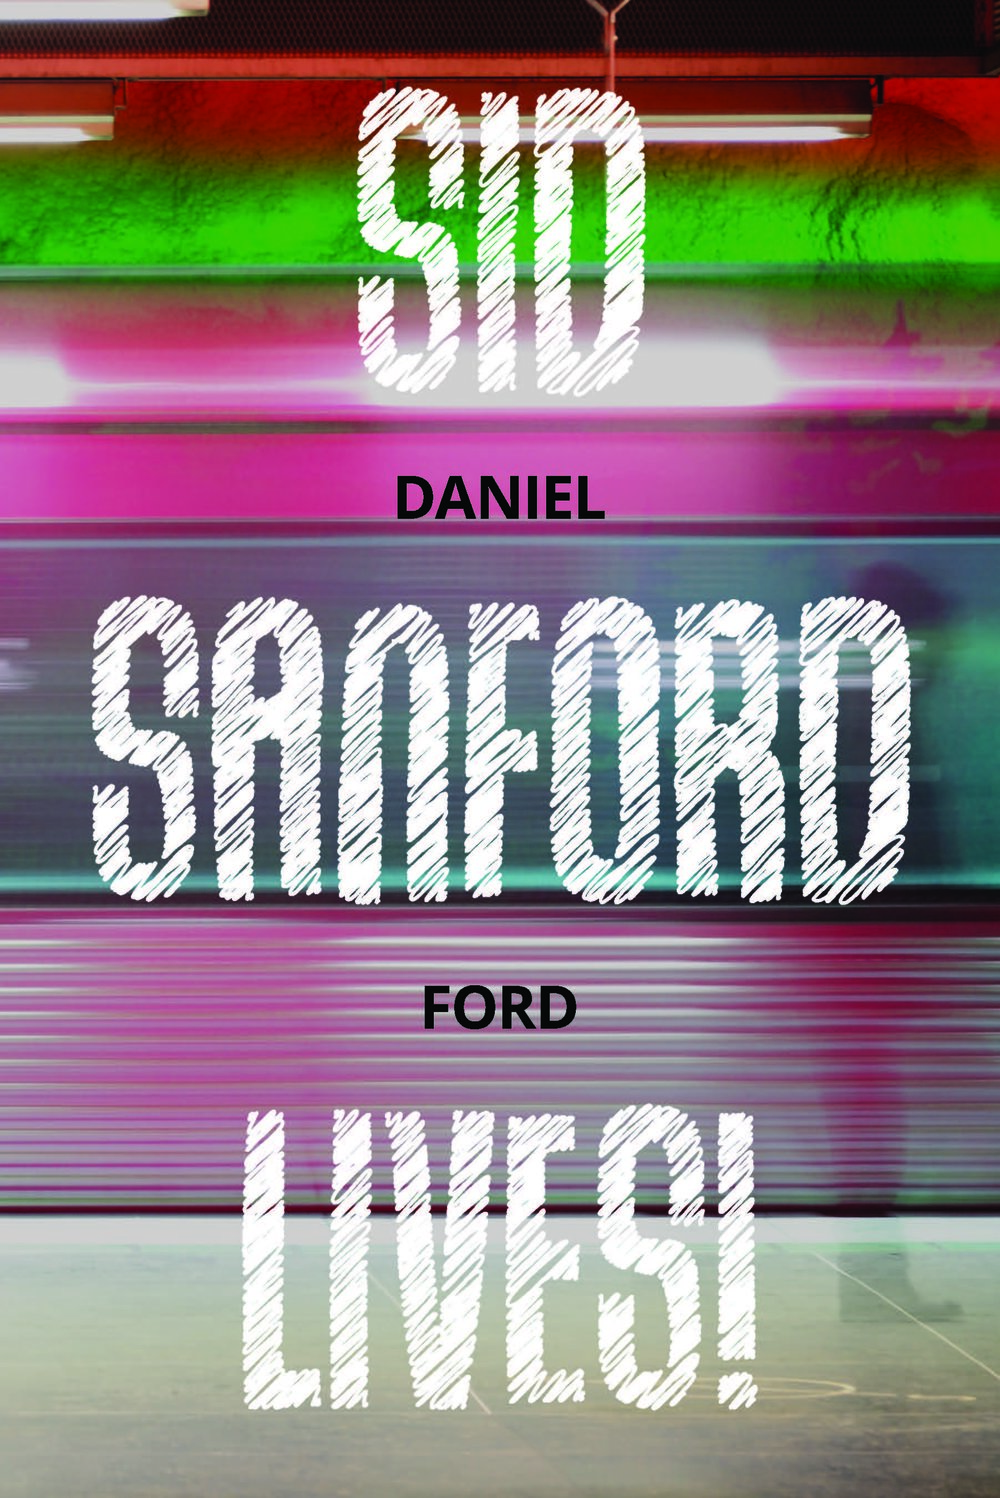 """Sid Sanford Lives! - Riffing on noir and told in a series of vignettes, Sid Sanford Lives! douses humanistic themes—love, loss, and family—in bourbon, shoves them in the barrel of a gun, and shoots. Sid Sanford always follows a path, just not his own. From backyard Wiffle ball games to New York City skyscrapers, Sid finds triumph and pain in equal measure during his uncertain, and at times violent, thrust into manhood.A colorful, loyal family, a plethora of eccentric friends, and a few star-crossed soulmates highlight his journey, but it's ultimately up to Sid whether his destiny fulfills his potential or drowns in the bottom of a bottle.Daniel Ford knocks the stuffing out of Sid Sanford, only to skillfully stitch him back together, presenting a complex, flawed, and compelling character. Sid Sanford Lives! is a wry, touching, and captivating portrait of the highs and lows that make up a life.""""—W.B. Belcher, author of Lay Down Your Weary Tune"""